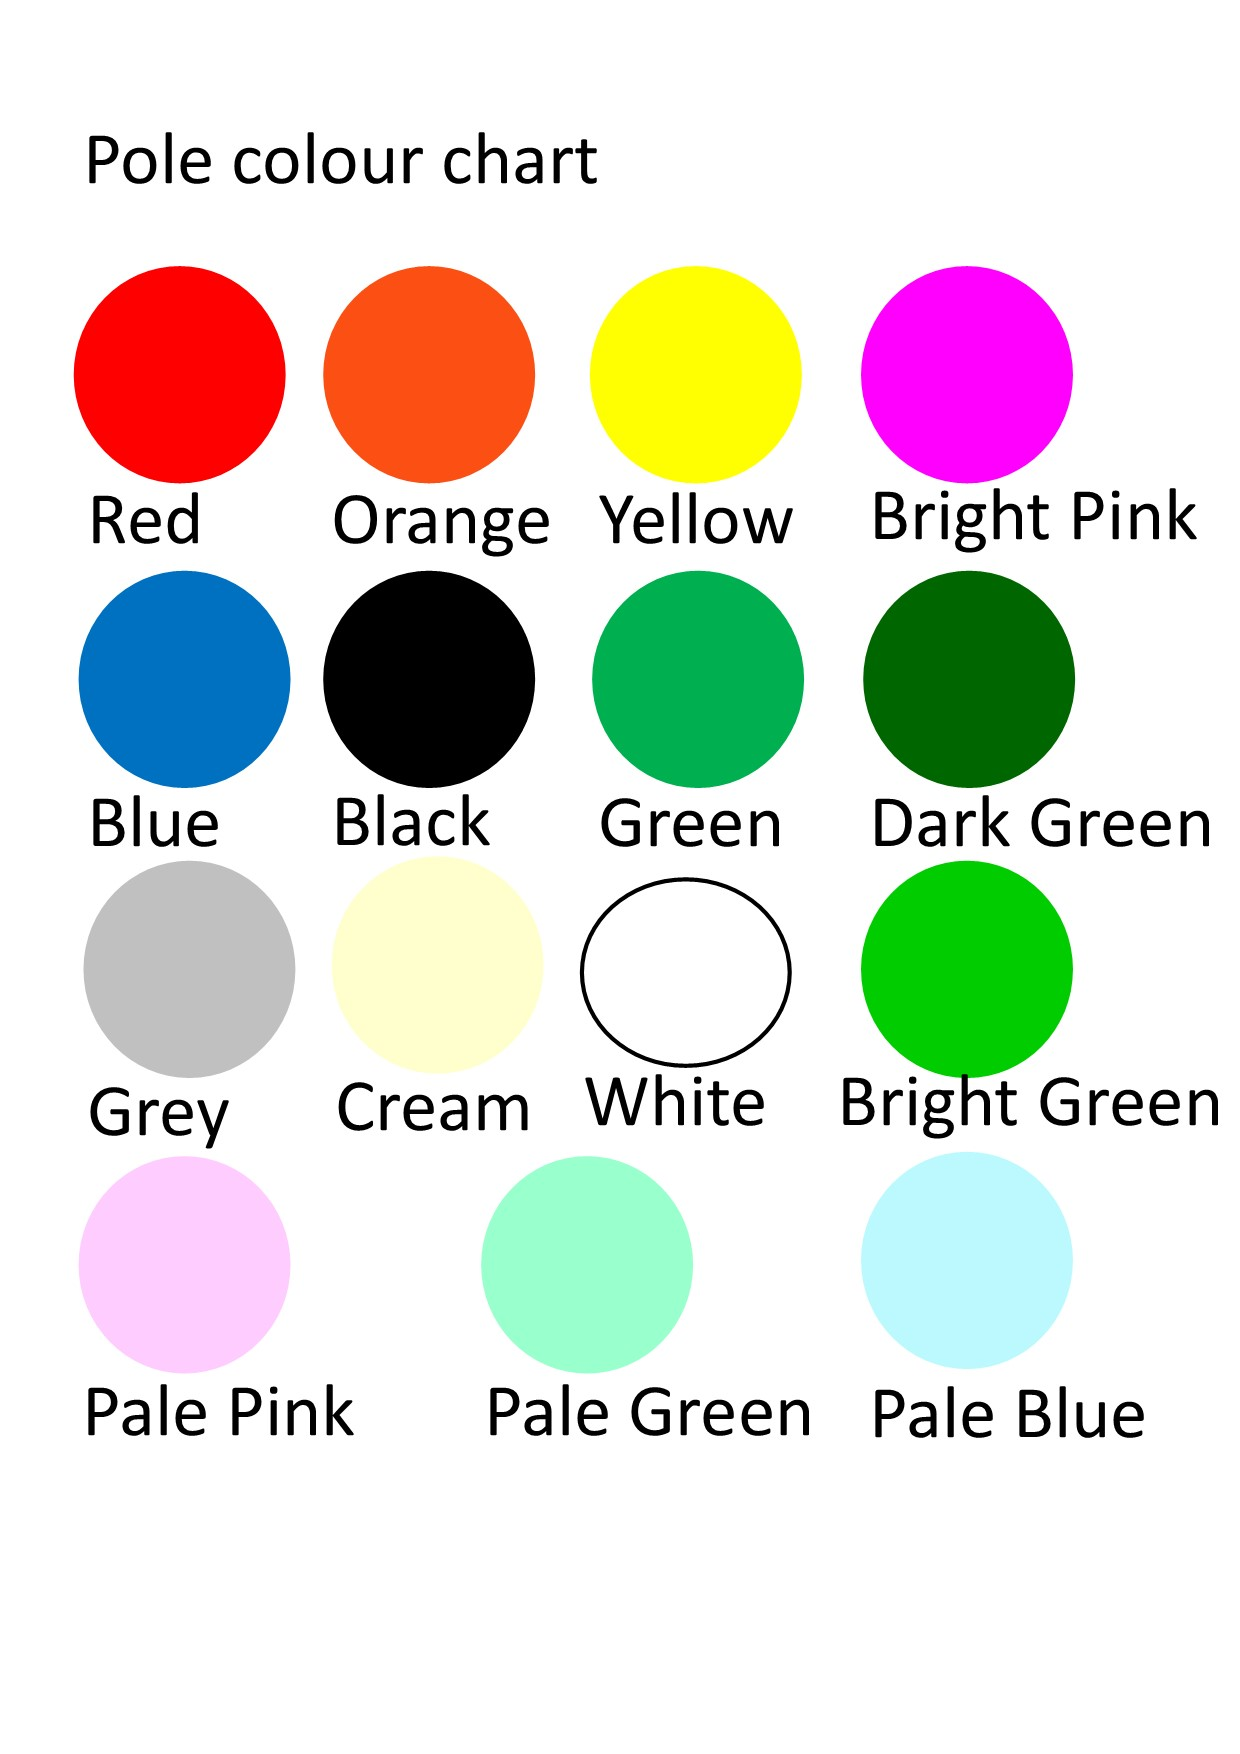 Pole colour chart